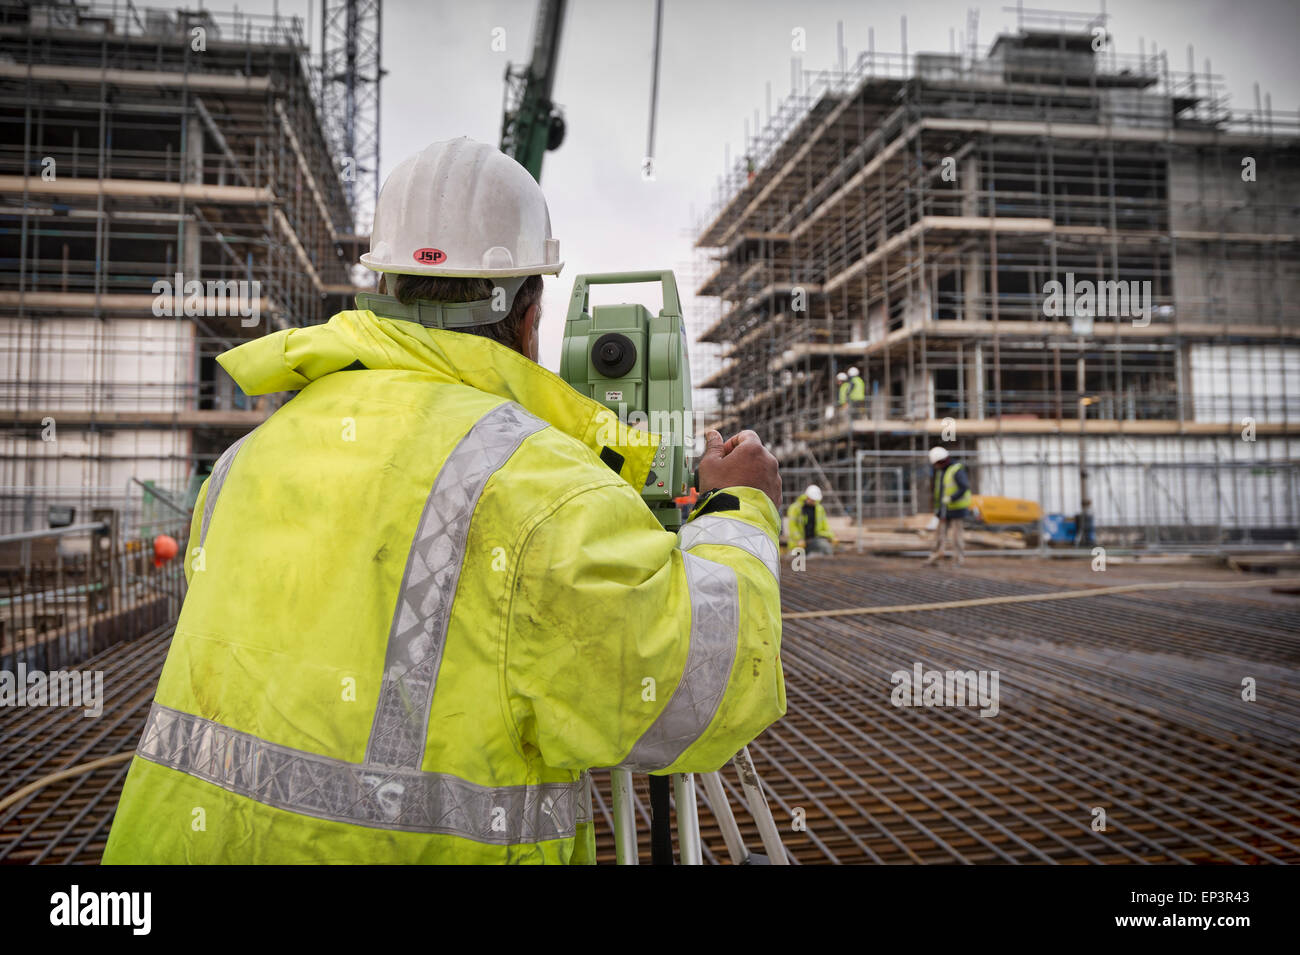 Surveyor on a construction site in yellow High-Viz - Stock Image